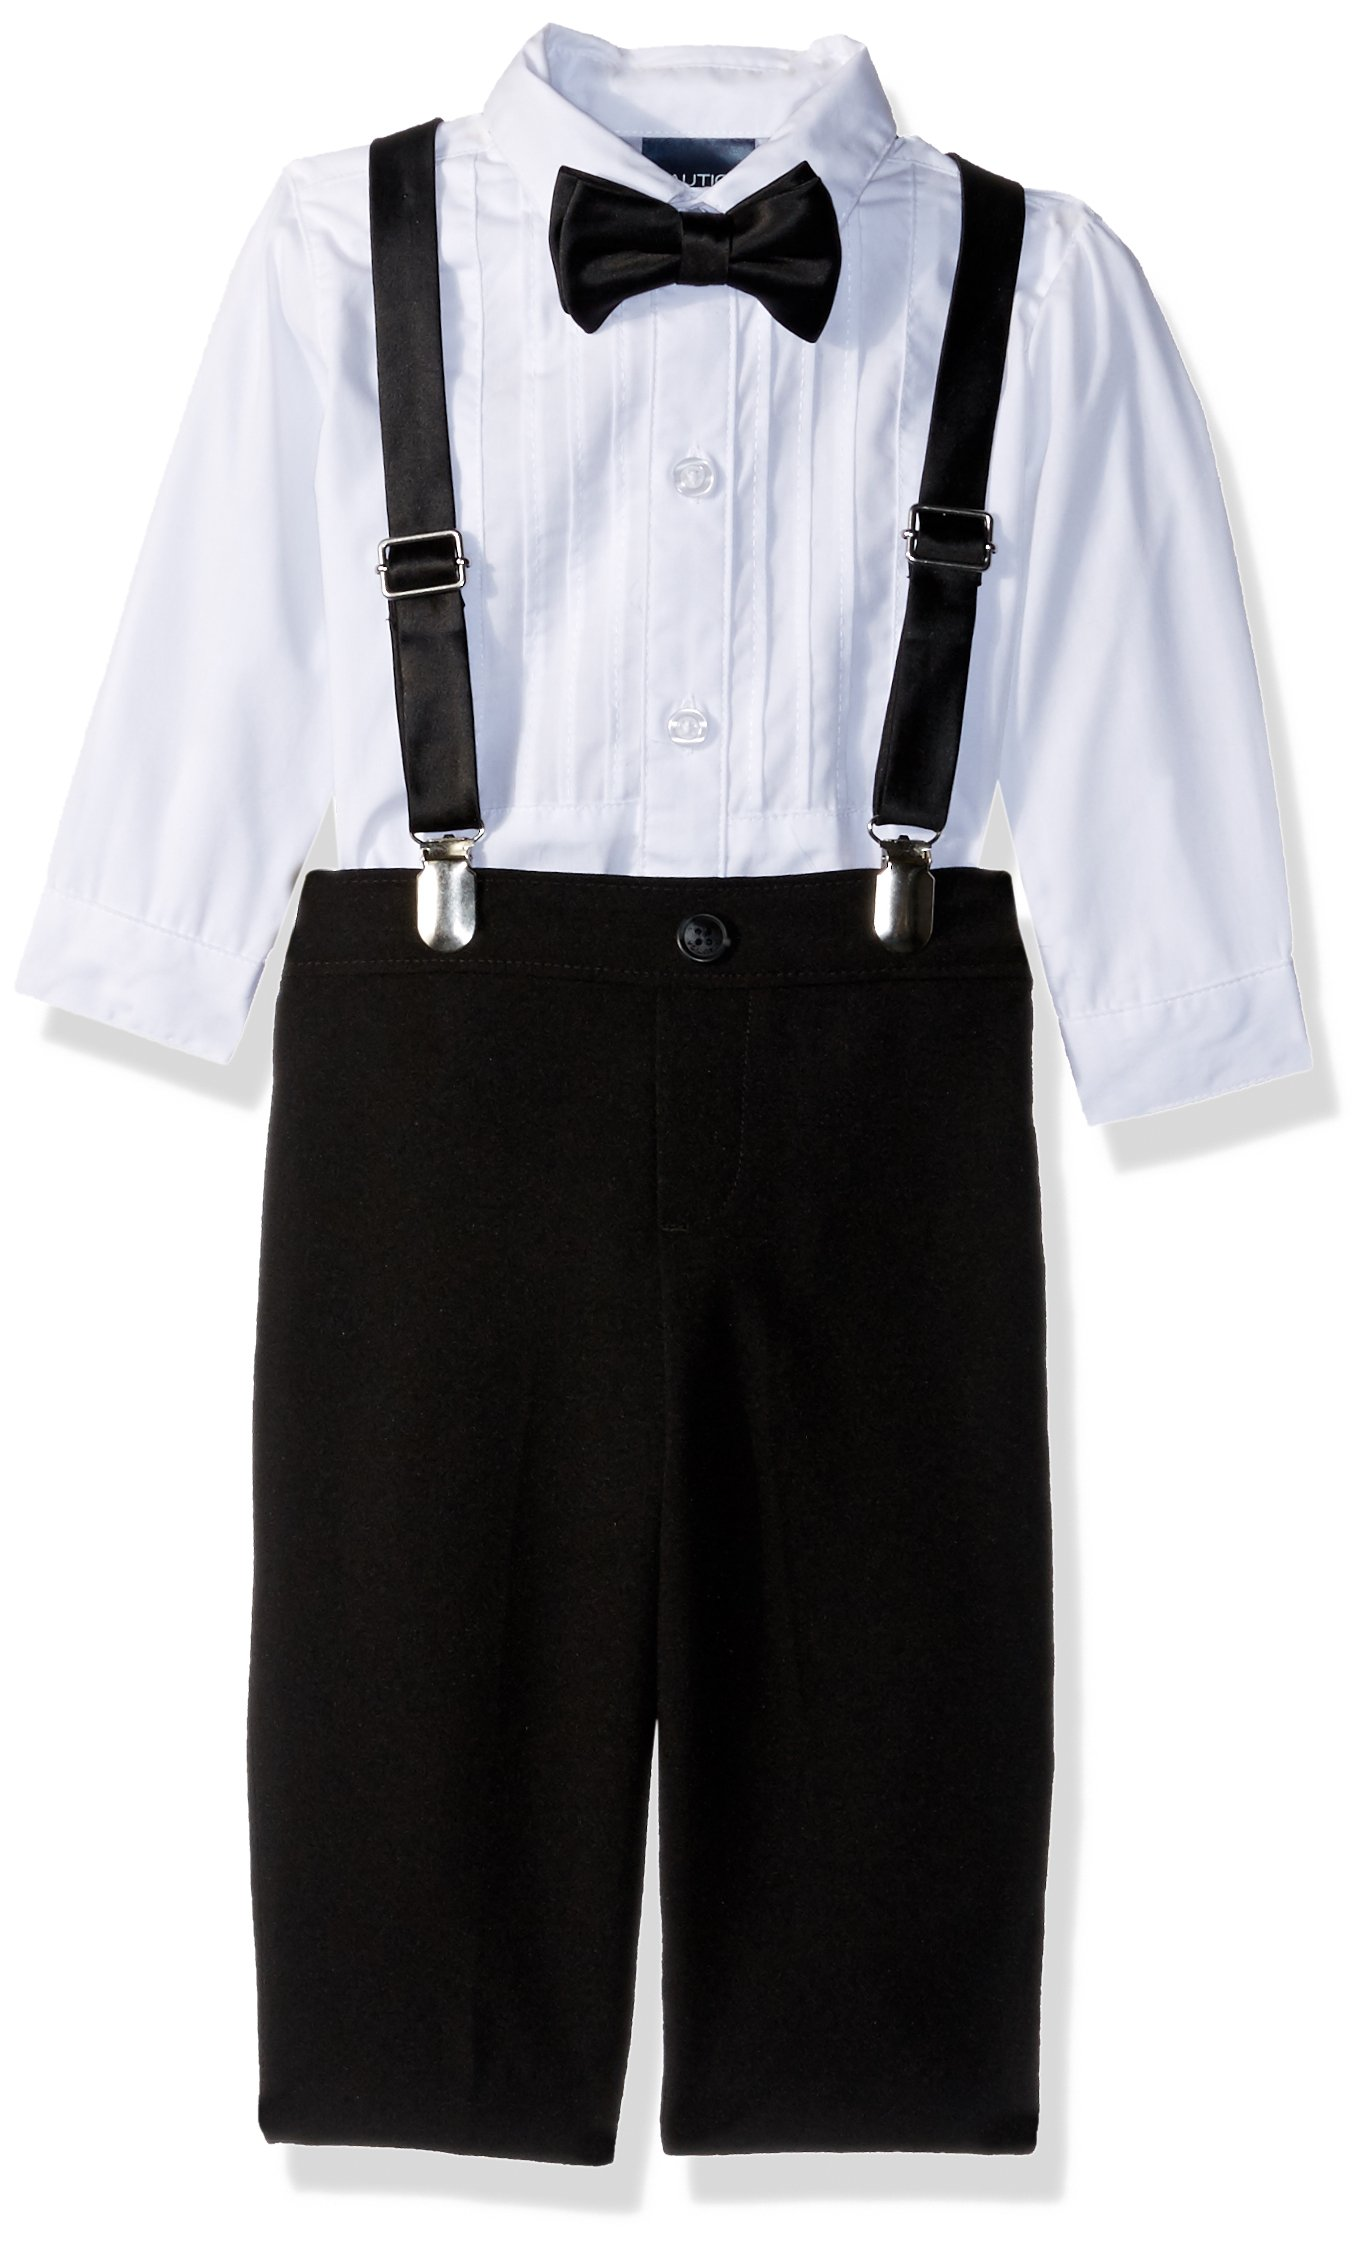 Nautica Baby Boys Set with Shirt, Pant, Suspenders, and Bow Tie, Black Tuxedo, 6-9 Months by Nautica